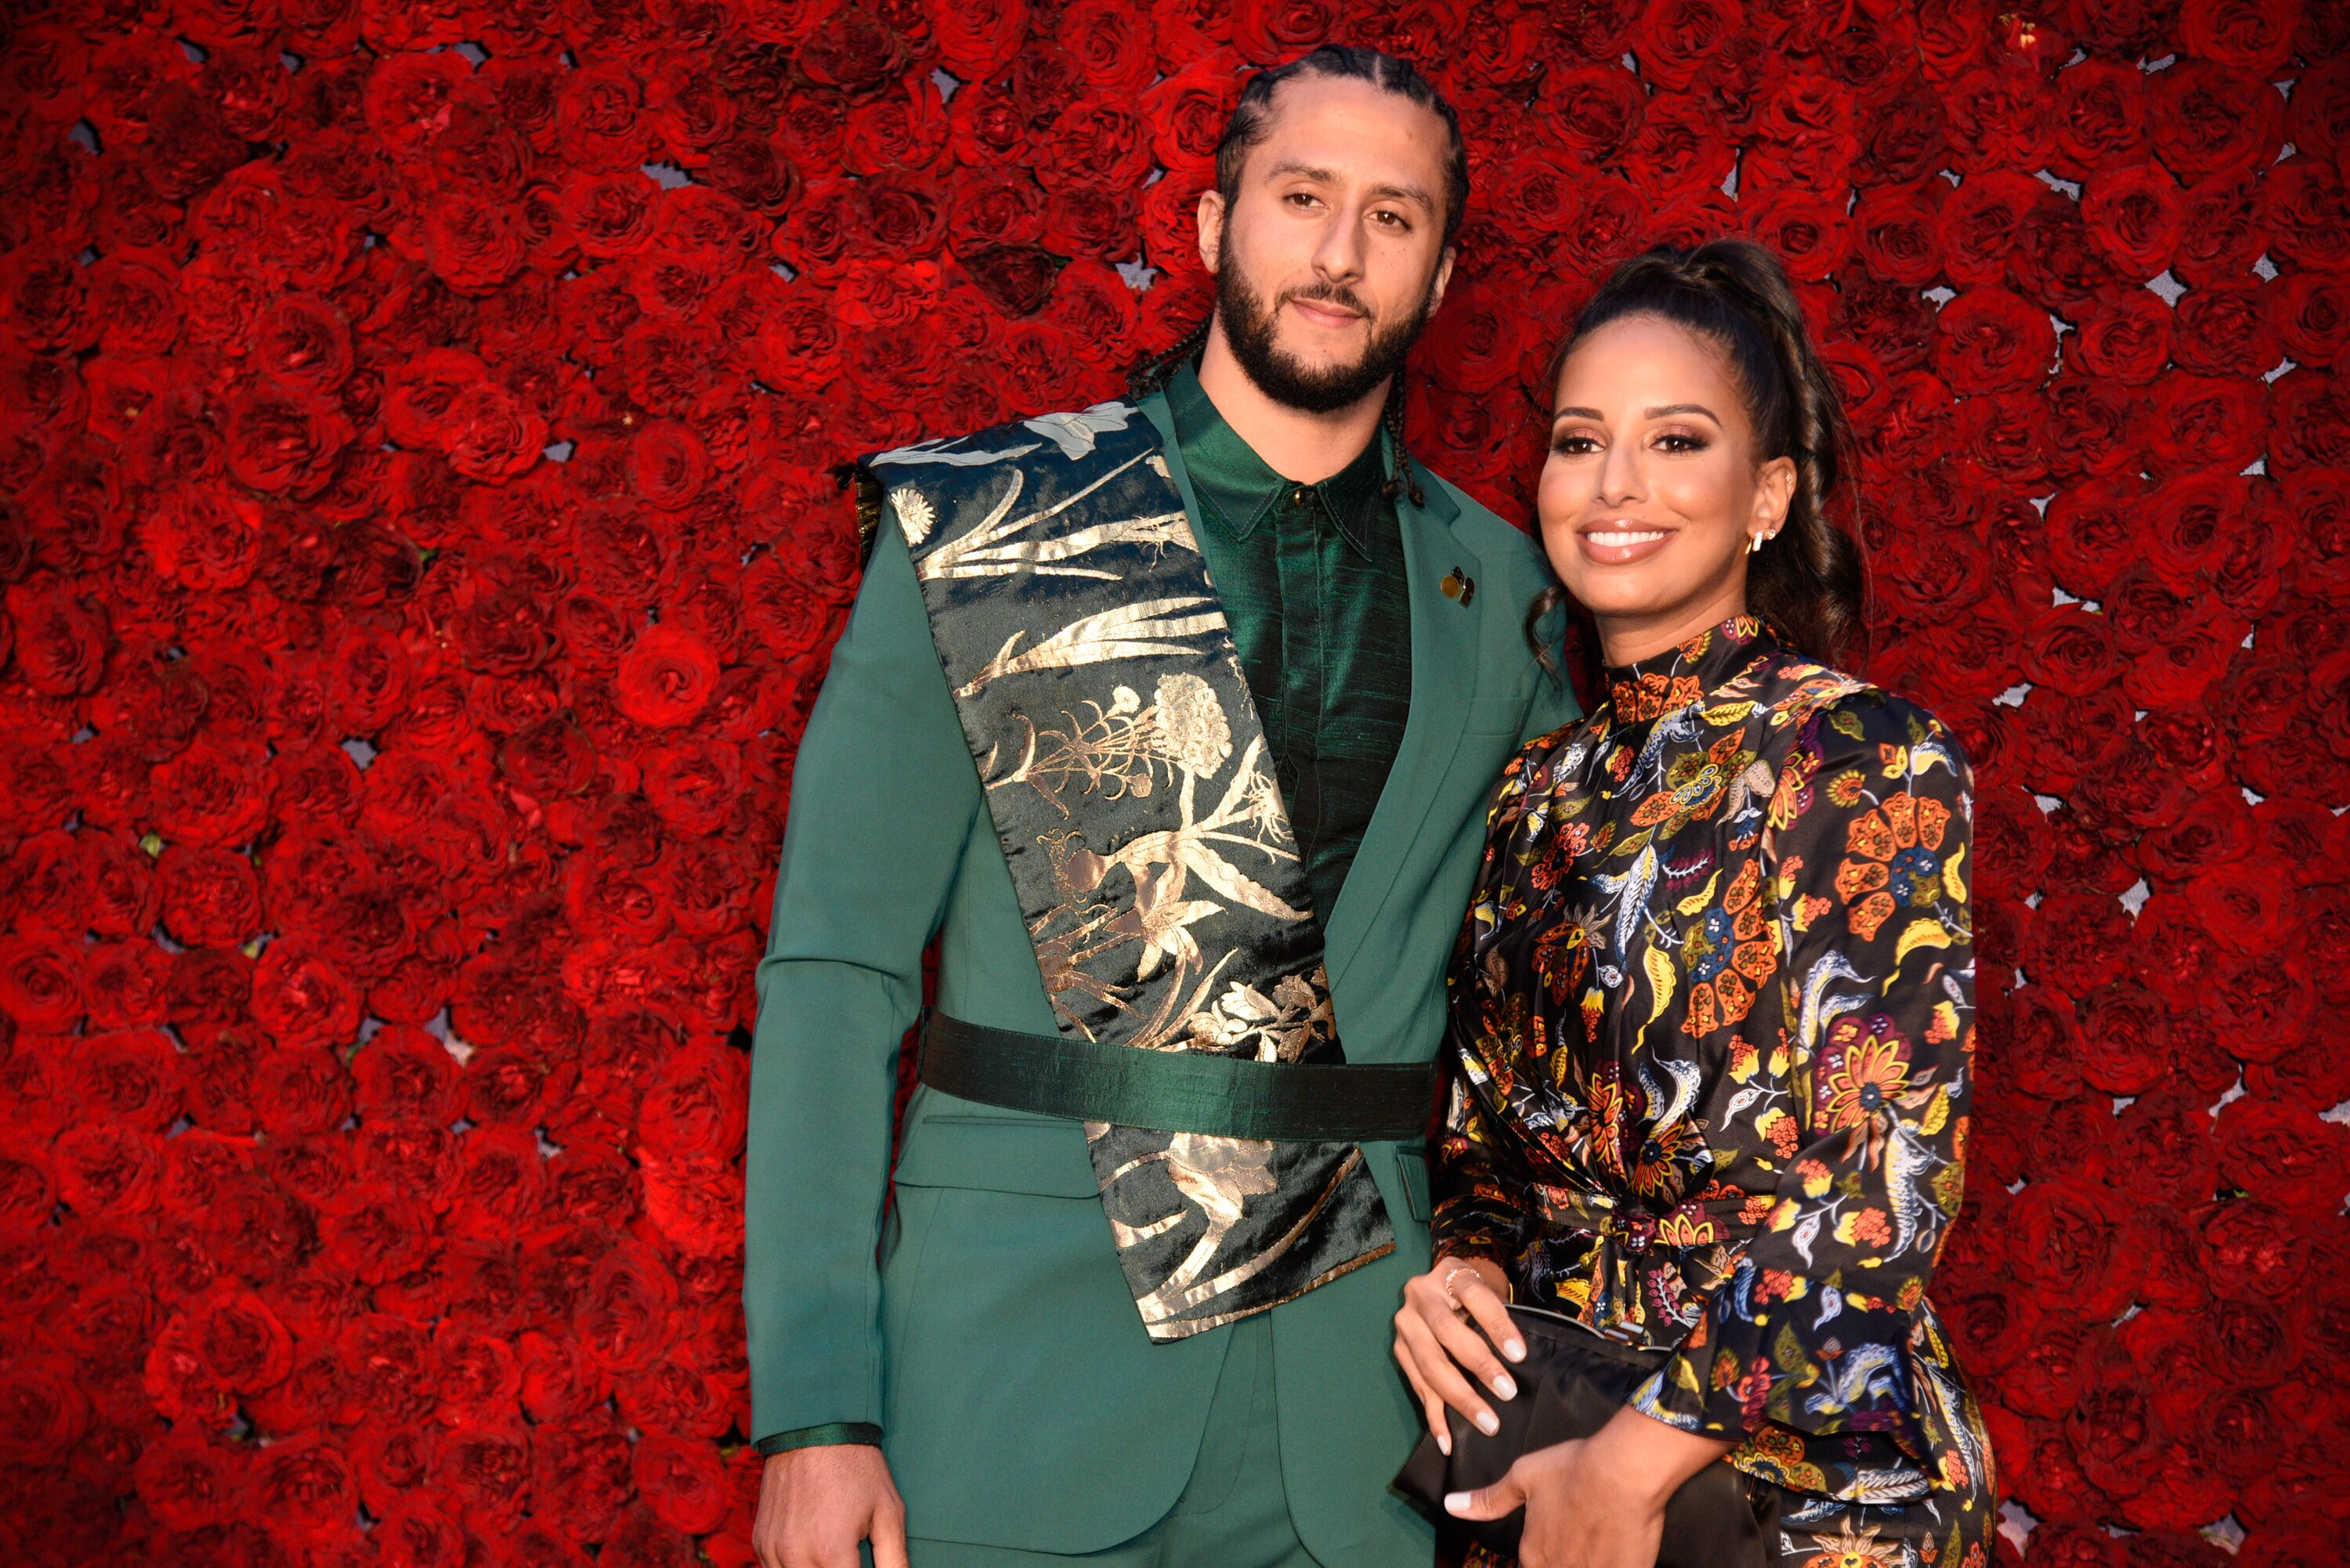 Colin Kaepernick and Nessa Diab attend Tyler Perry Studios Grand Opening Gala in 2019 in Atlanta, Georgia | Source: Getty Images